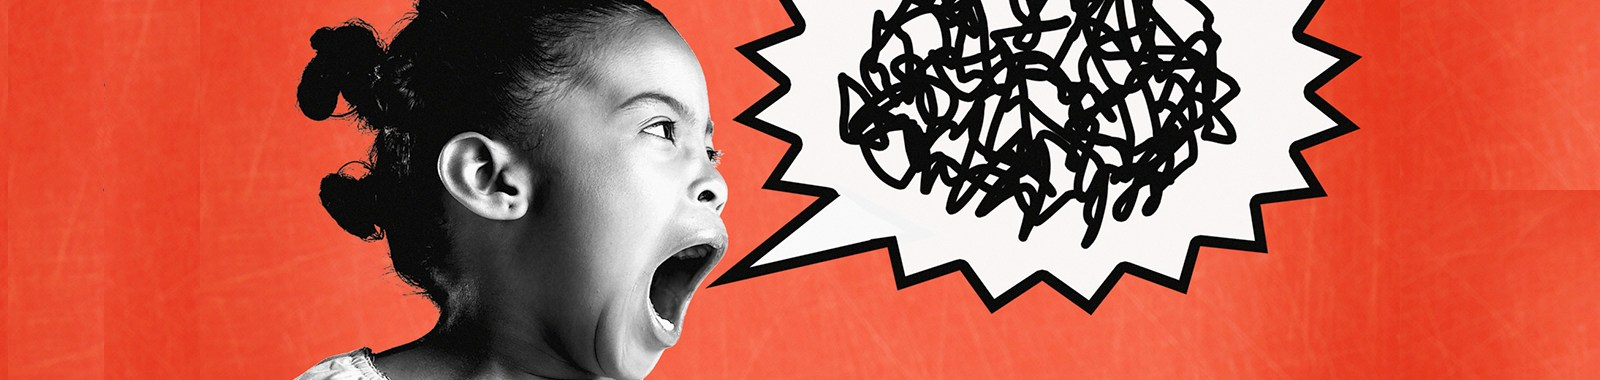 Girl (6-8) yelling (Digital Composite)